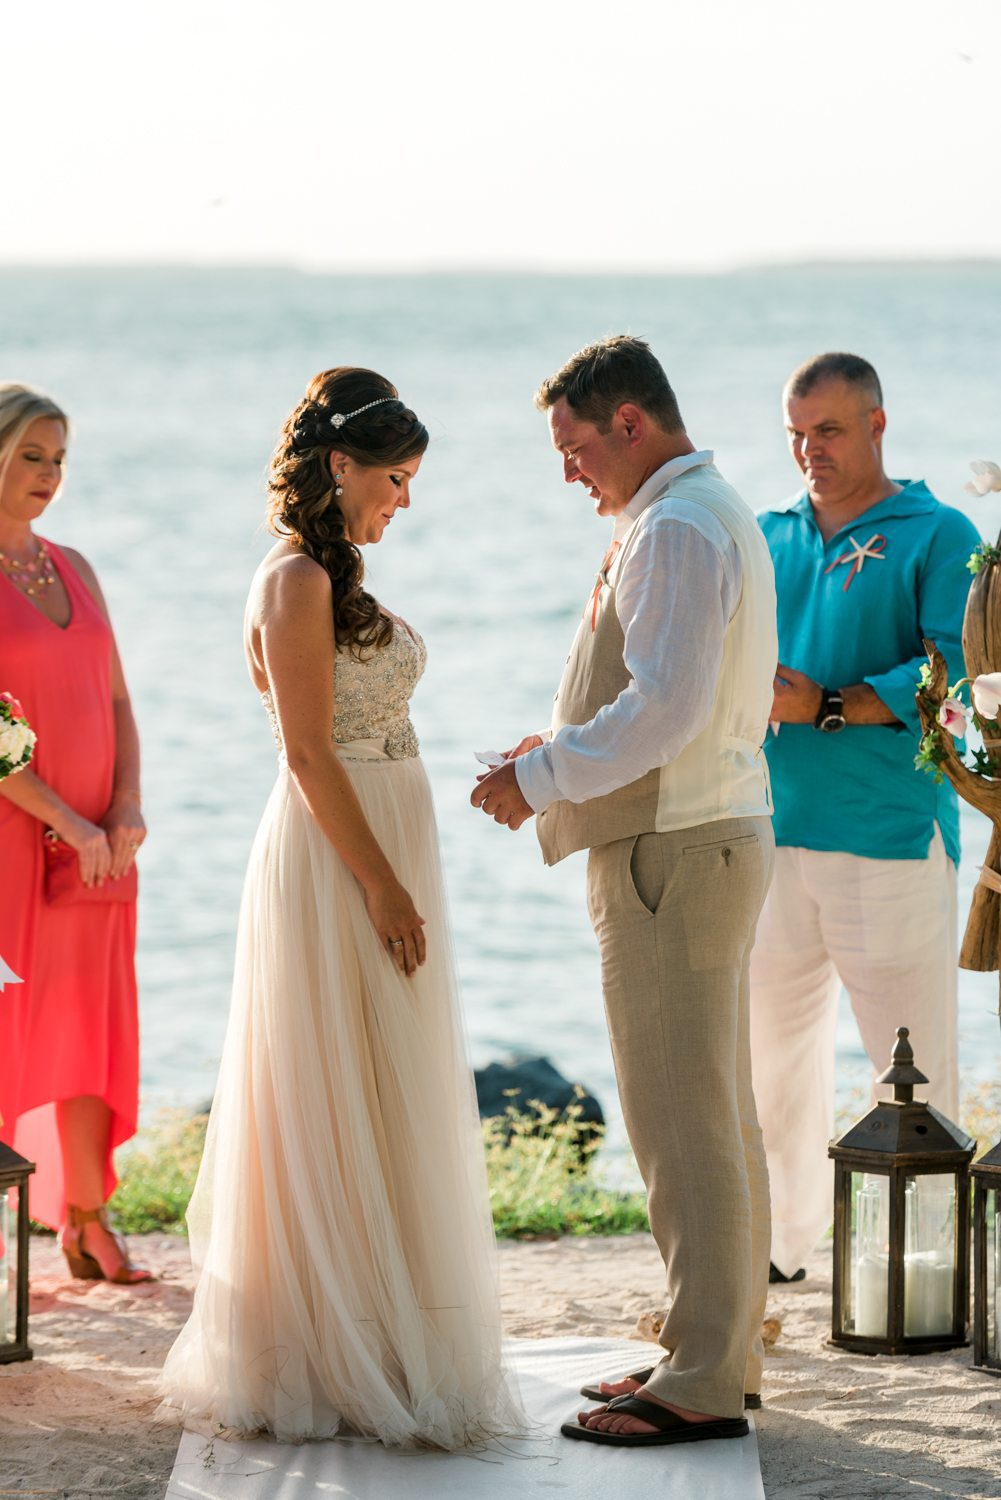 Erin Colin Fort Zachary Taylor Rooftop Cafe Key West Wedding Photographer 36 - Erin & Colin   Key West Wedding Photographer   Fort Zachary Taylor